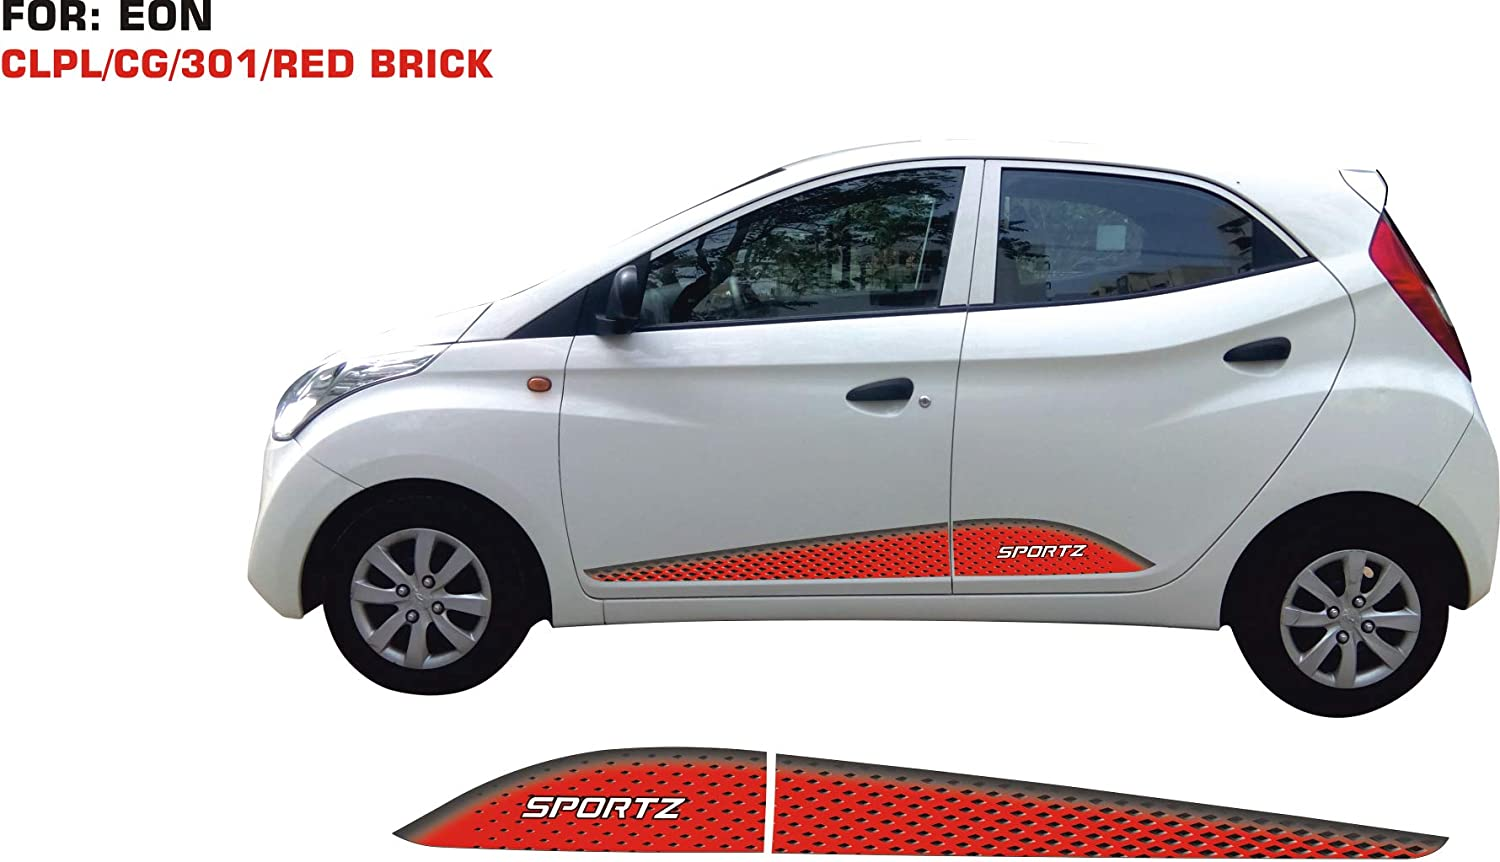 Automaze car body stickers graphics for eon red brick both sides model 0301 amazon in car motorbike